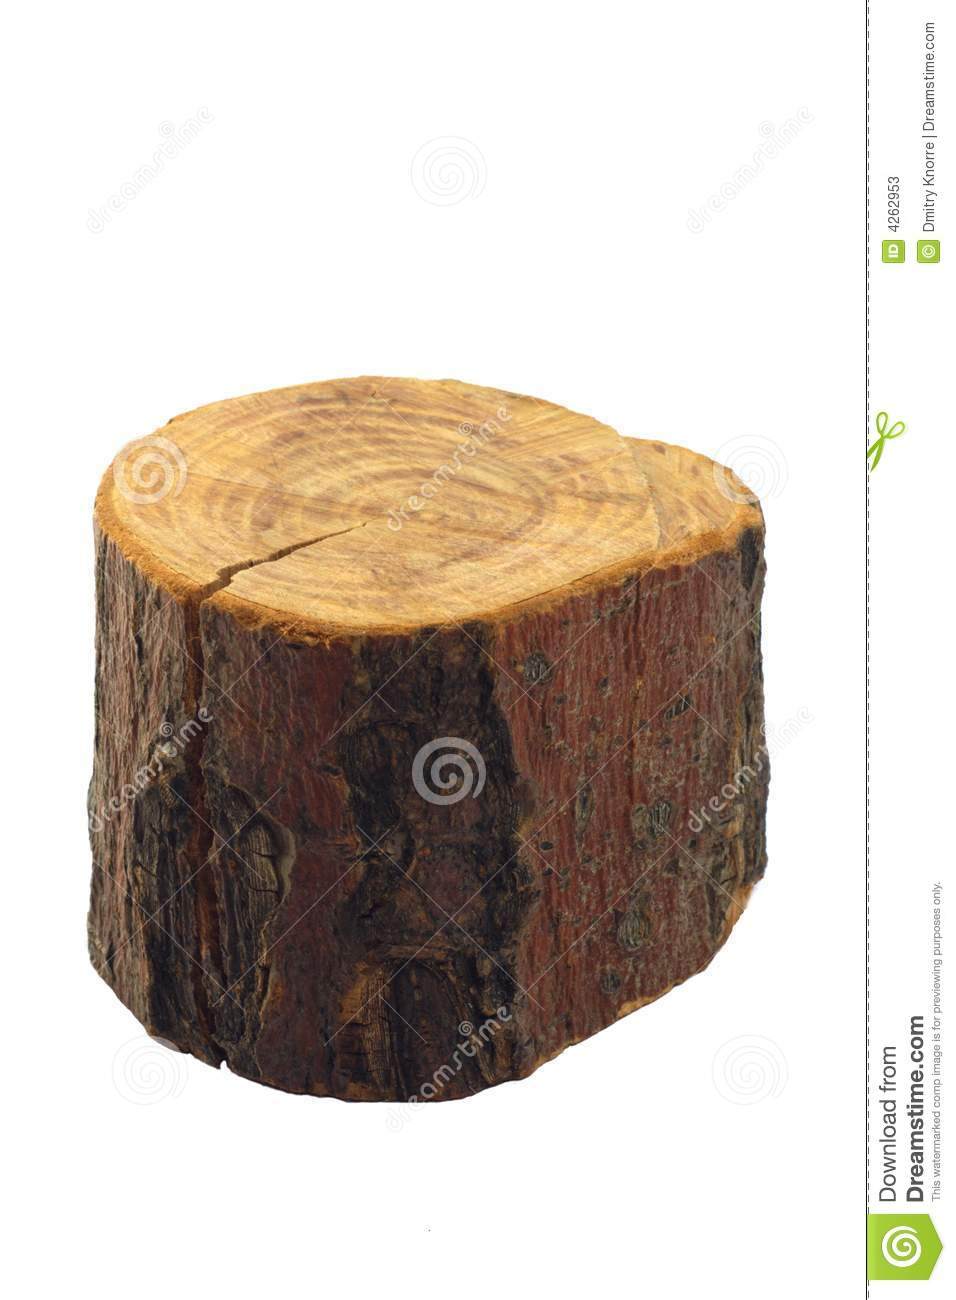 Piece of wood, isolated